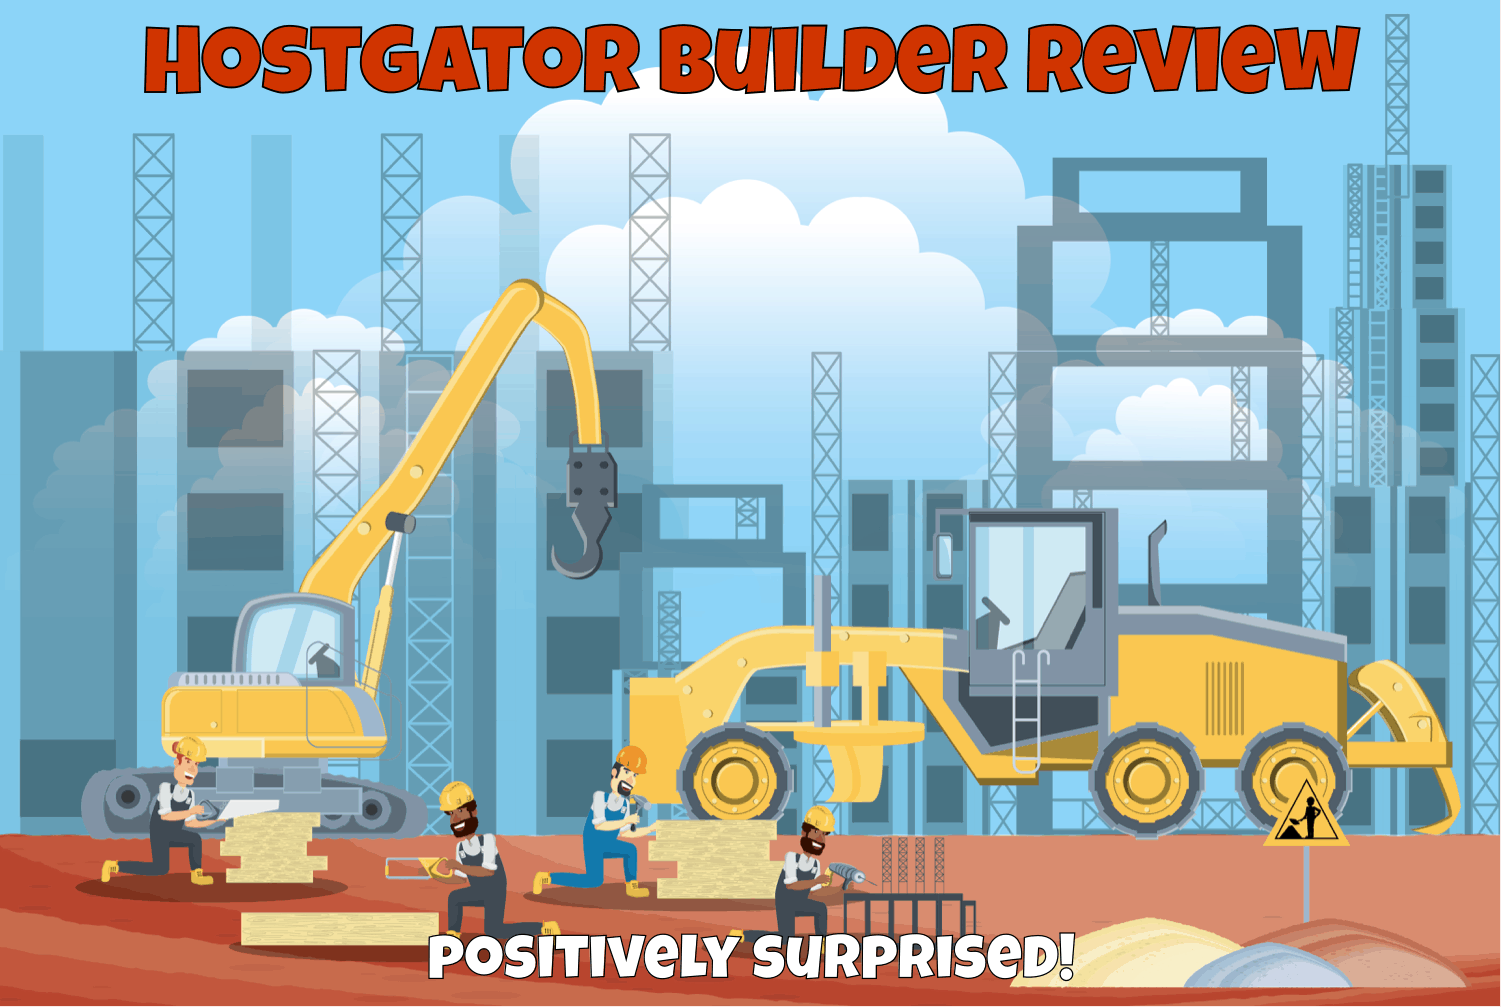 hostgator website builder review